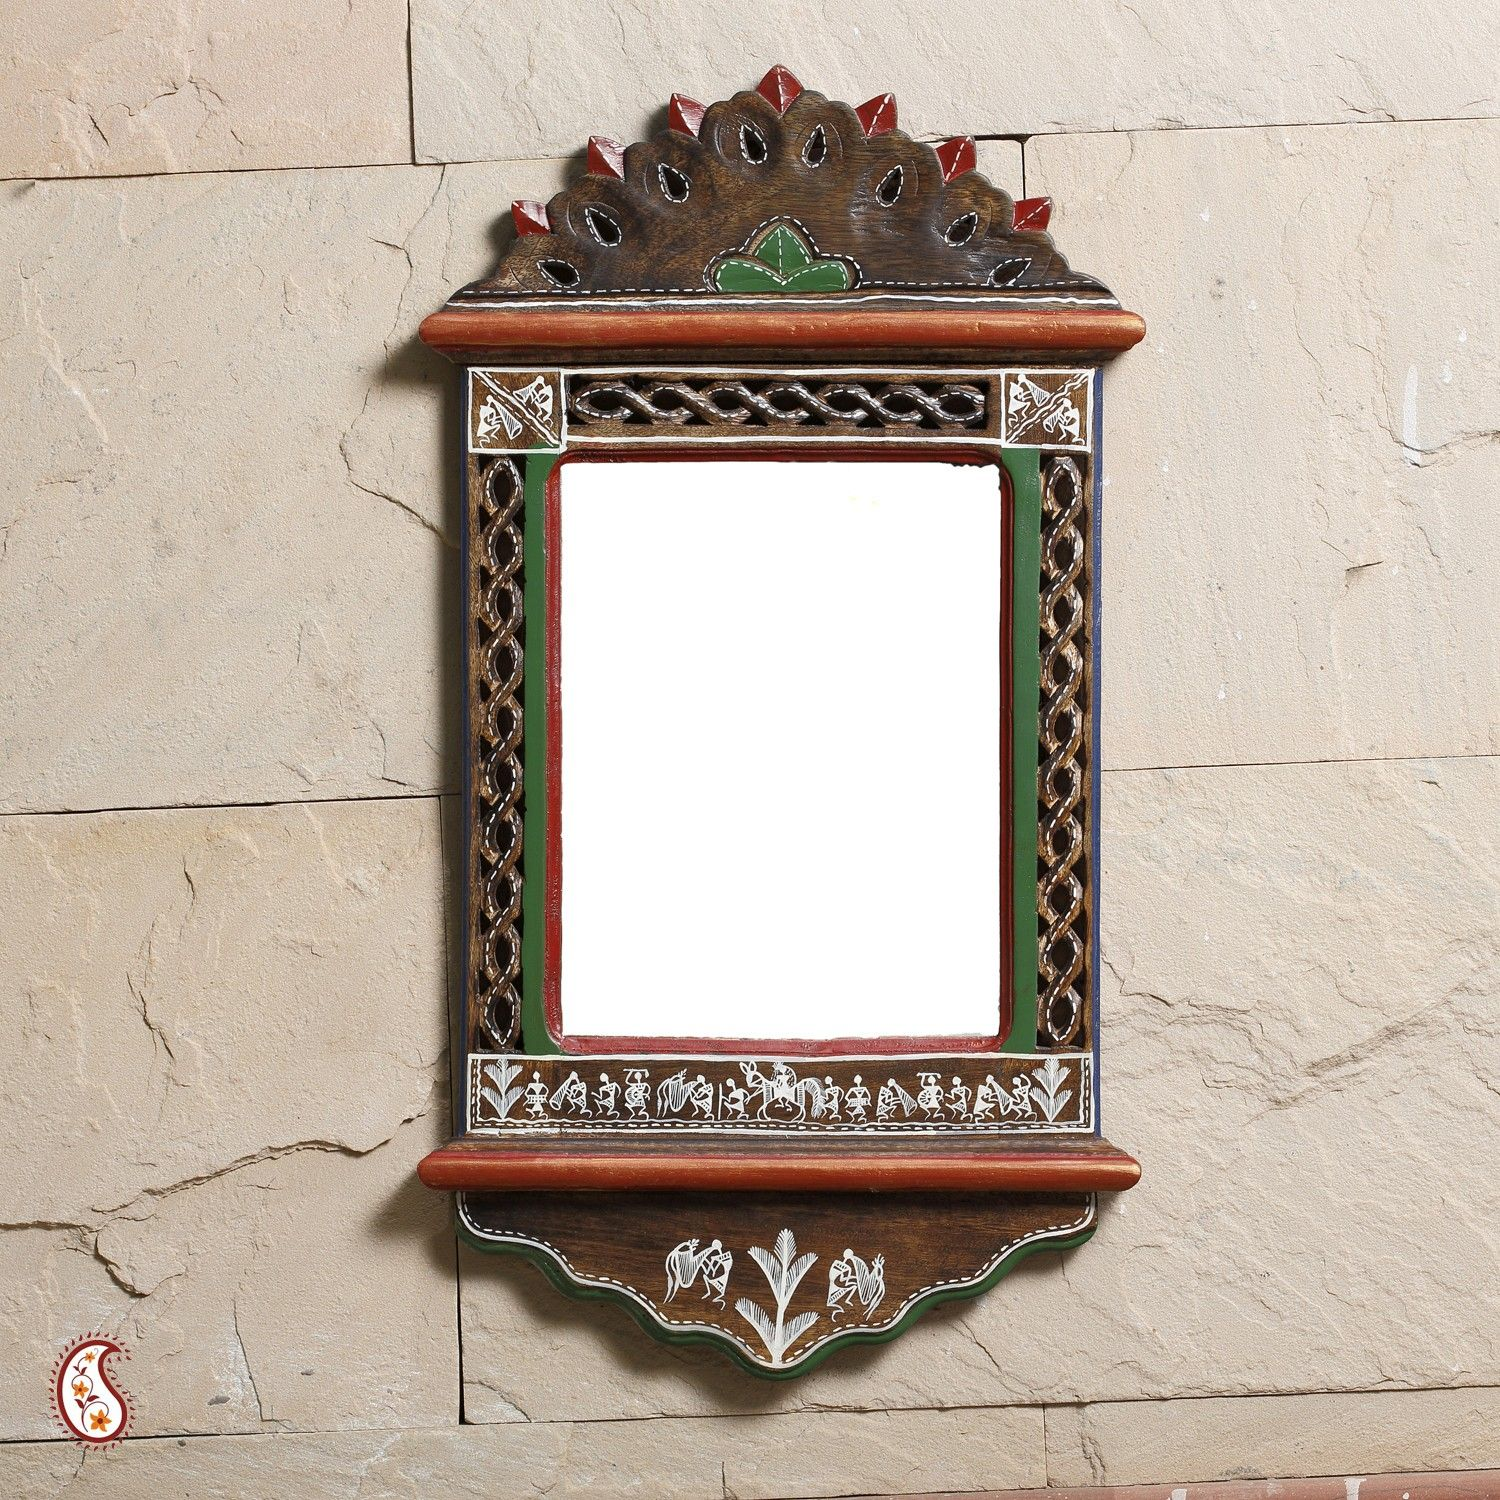 The Frame Is Made Of Wood Warli Paint On The